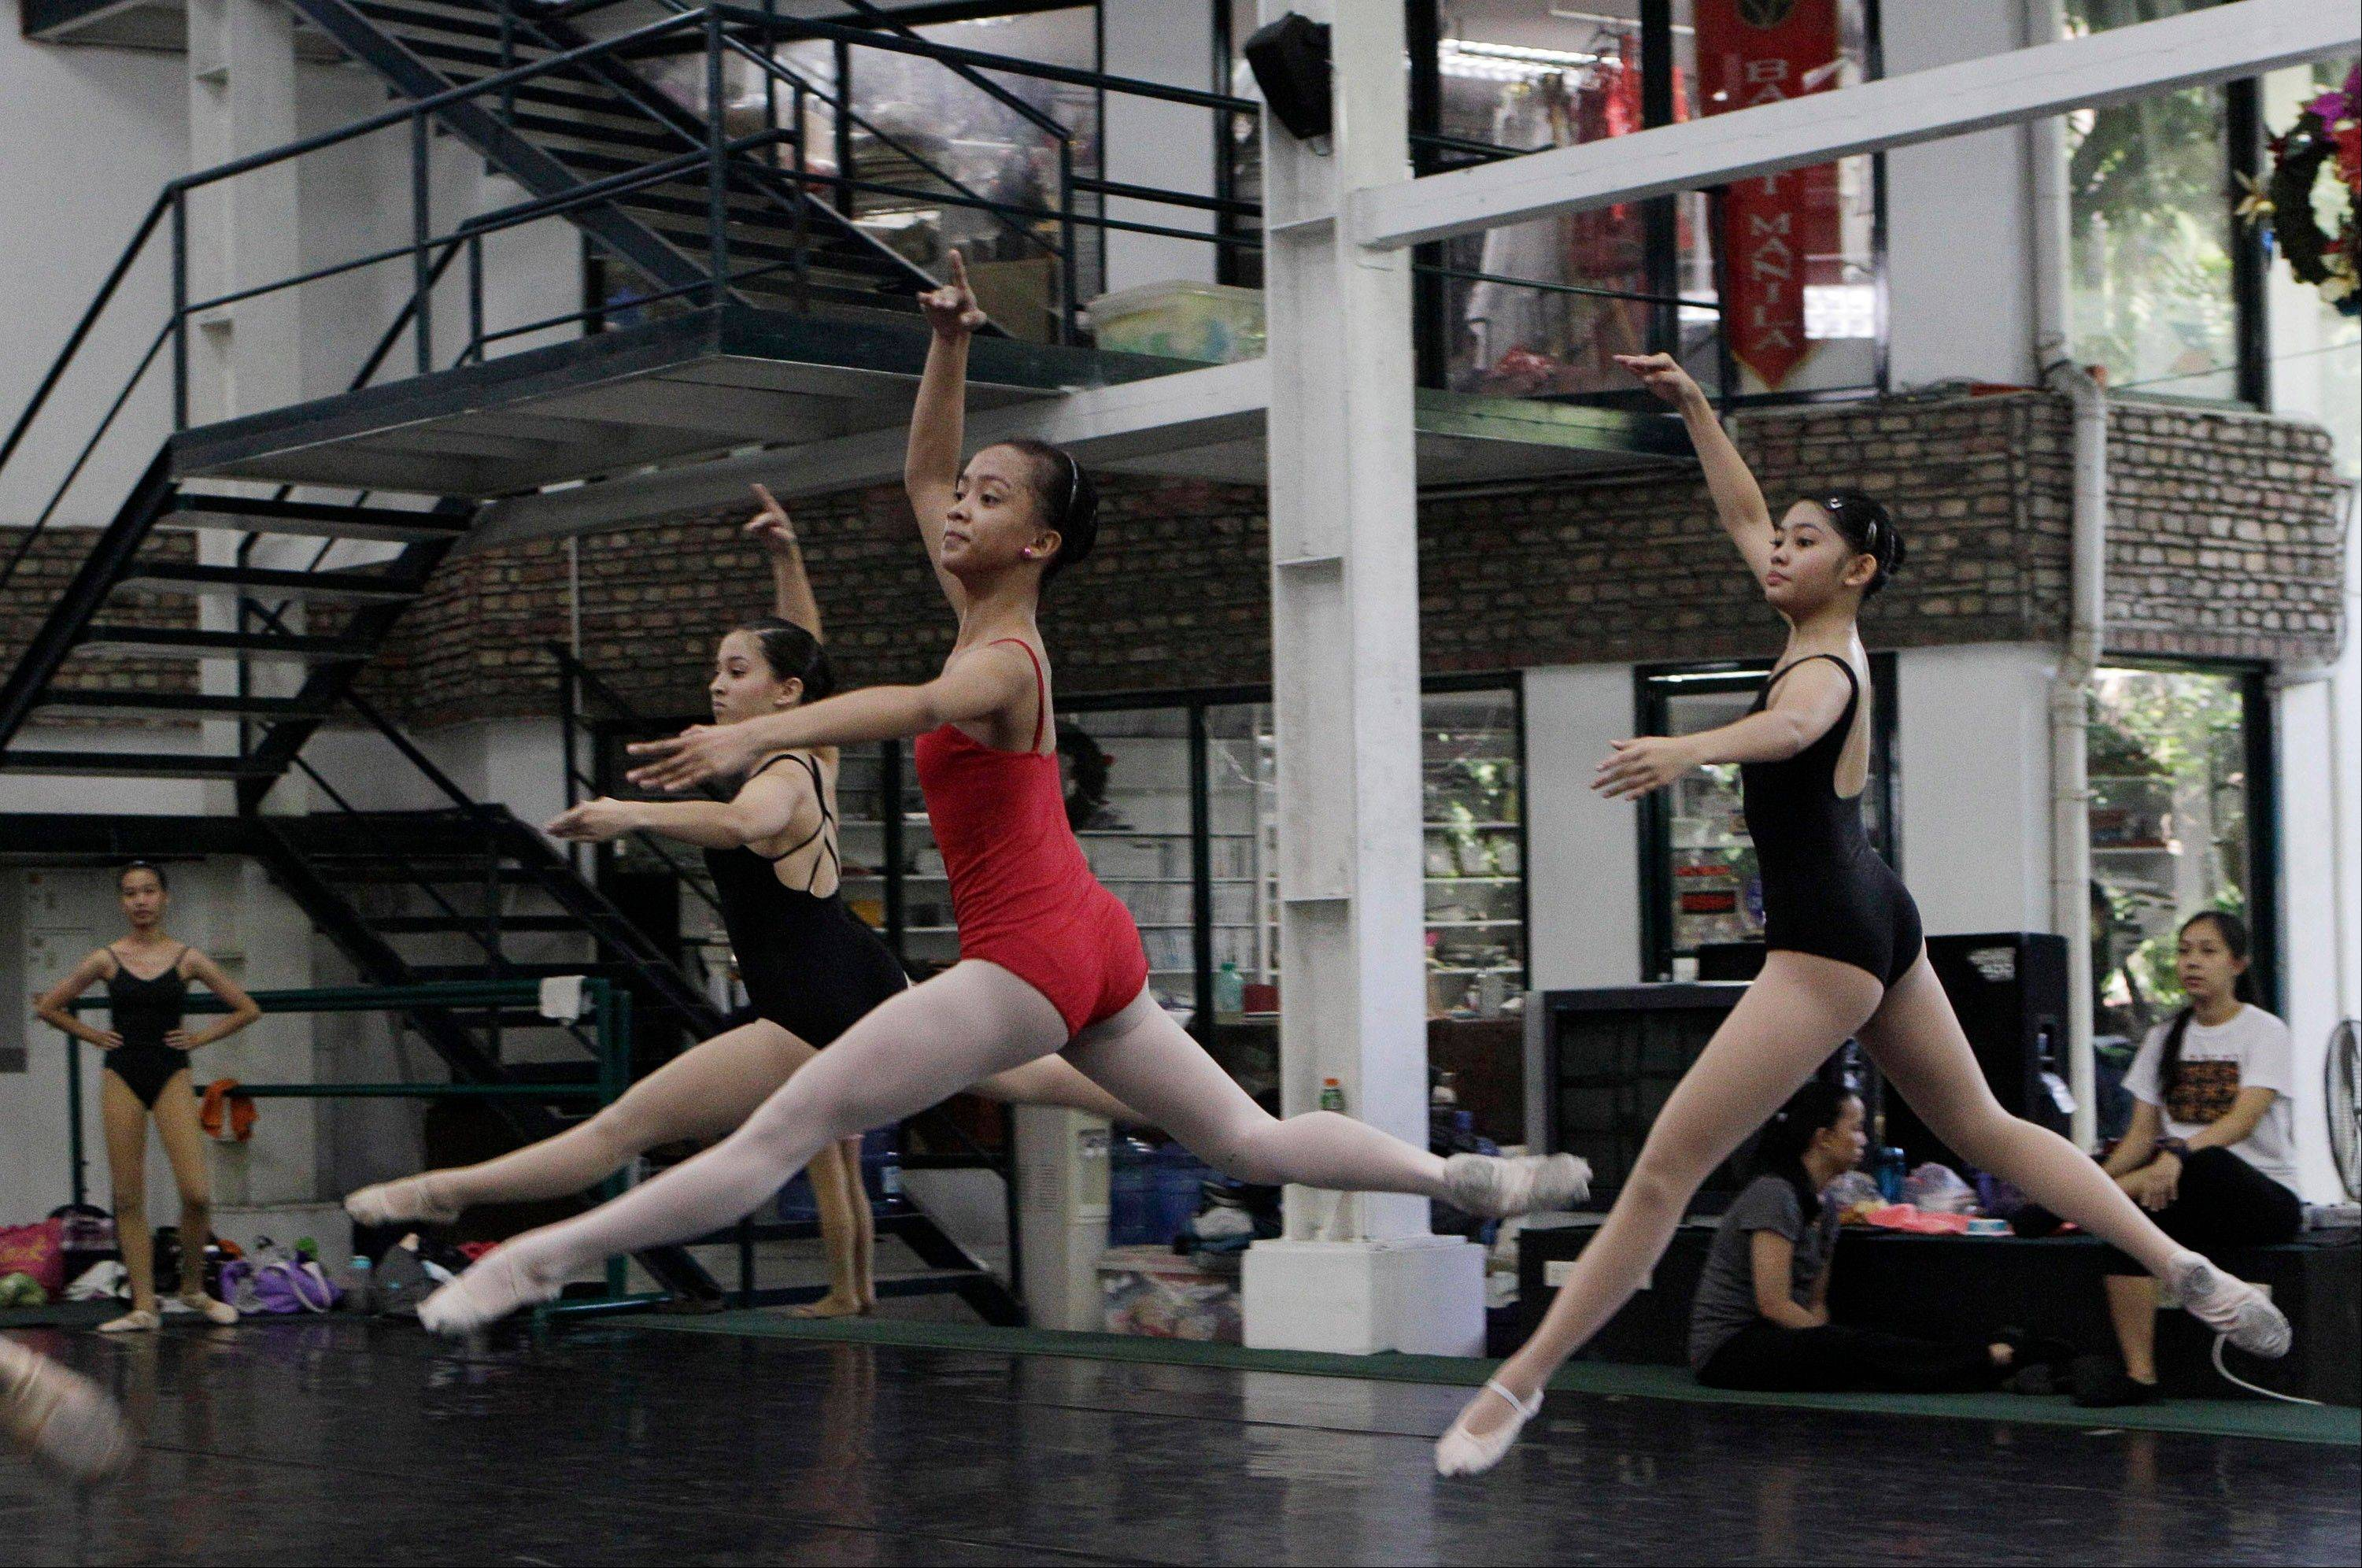 Filipino slum dweller Jessa Balote, center, practices with other students during a class at Ballet Manila in the Philippine capital. As an apprentice, she makes around $170 a month, sometimes double that, from stipend and performance fees.